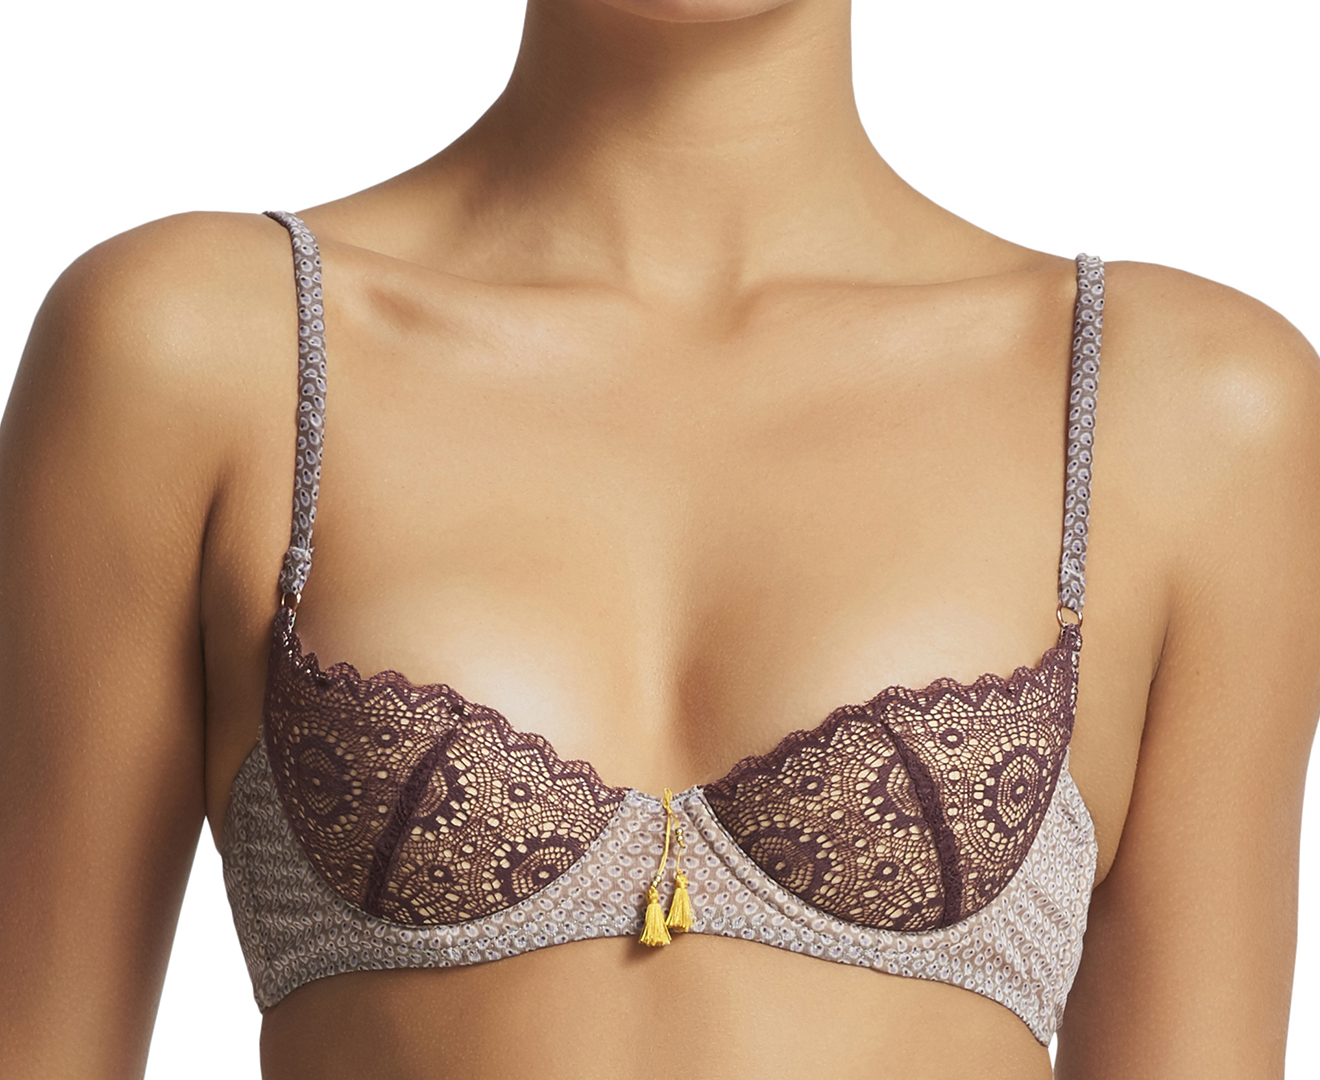 95b4adfd701b Elle Macpherson Body Breeze Balconette Bra - Purple Desert Dot |  Catch.com.au